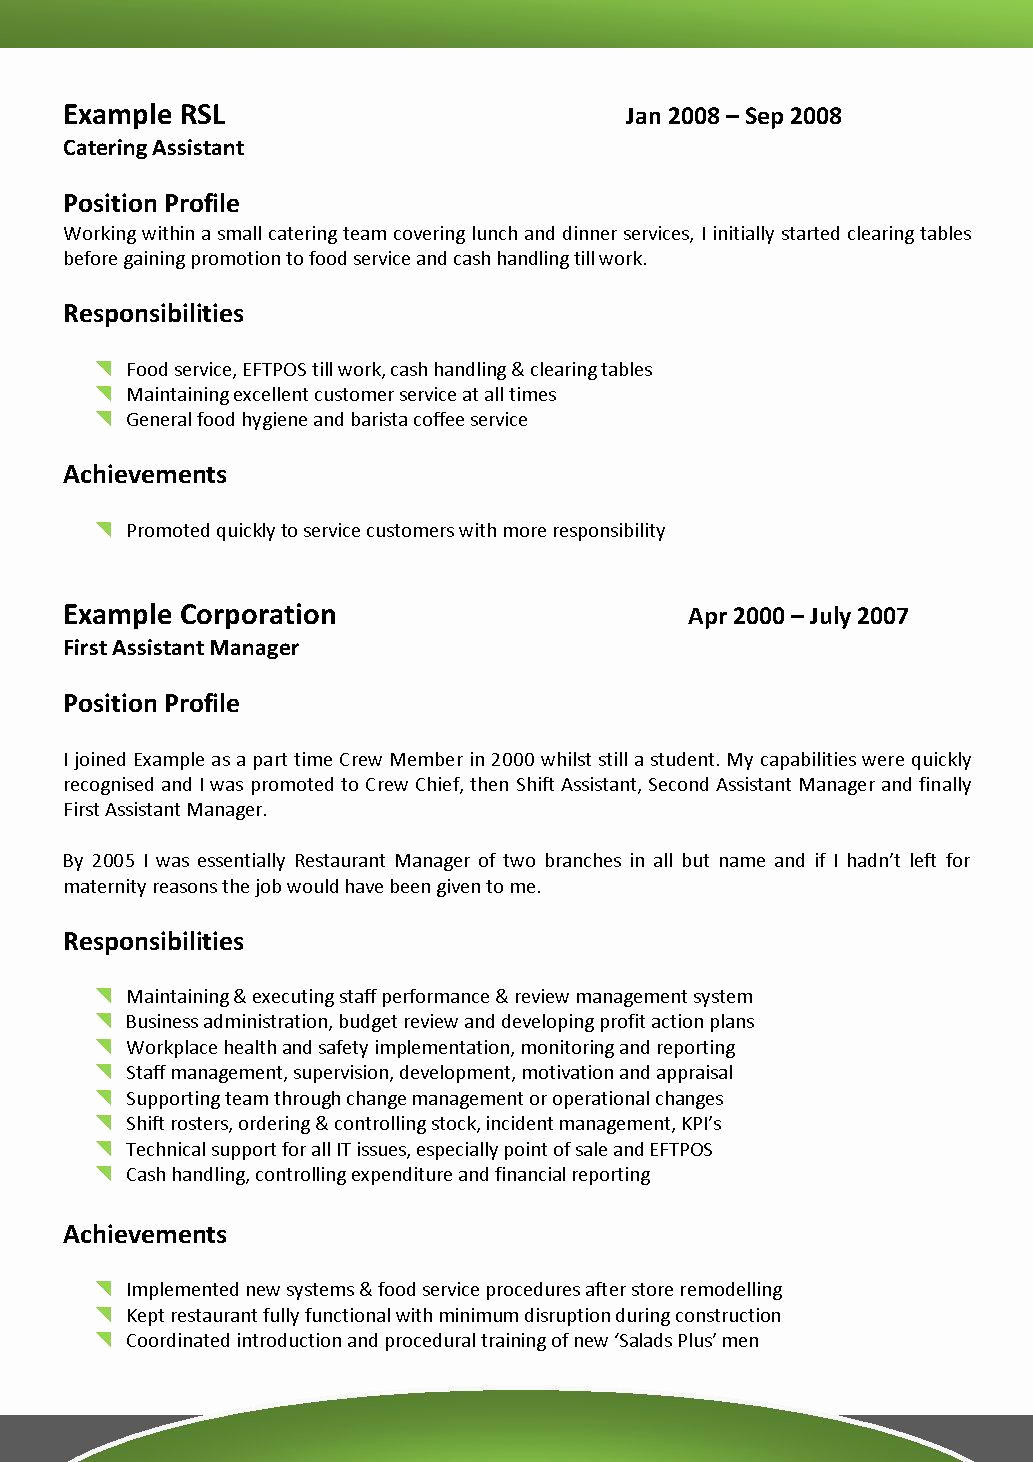 47 Cool Perfect Cv Format with Images